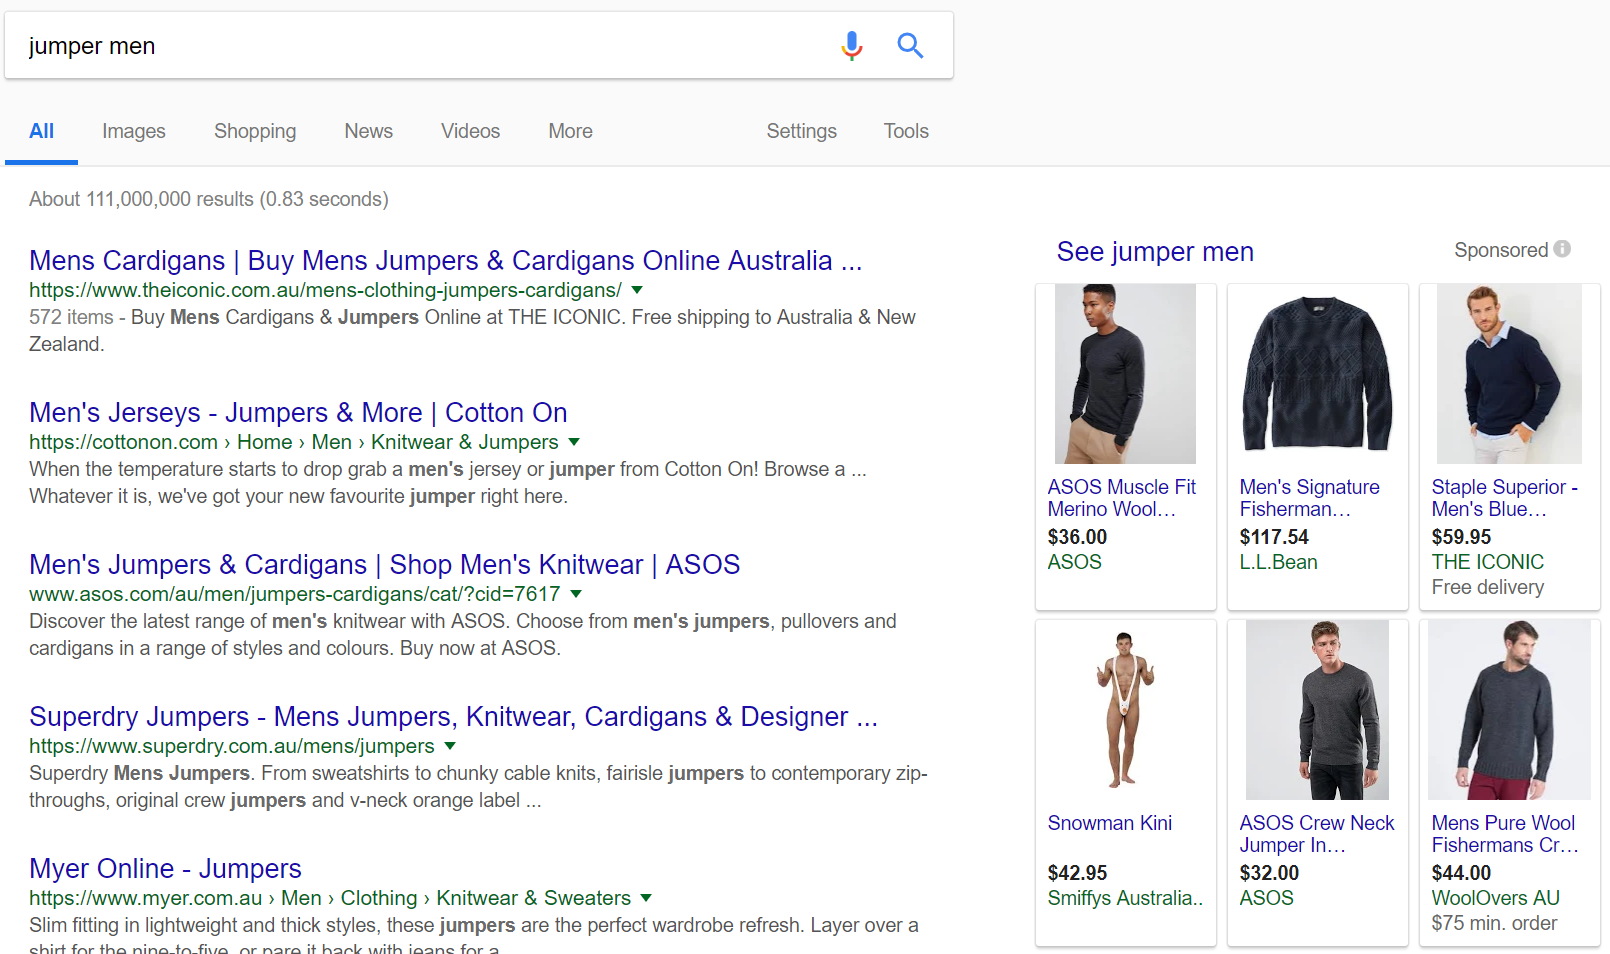 The Best Way To Create Your Google Shopping Feed in Shopify